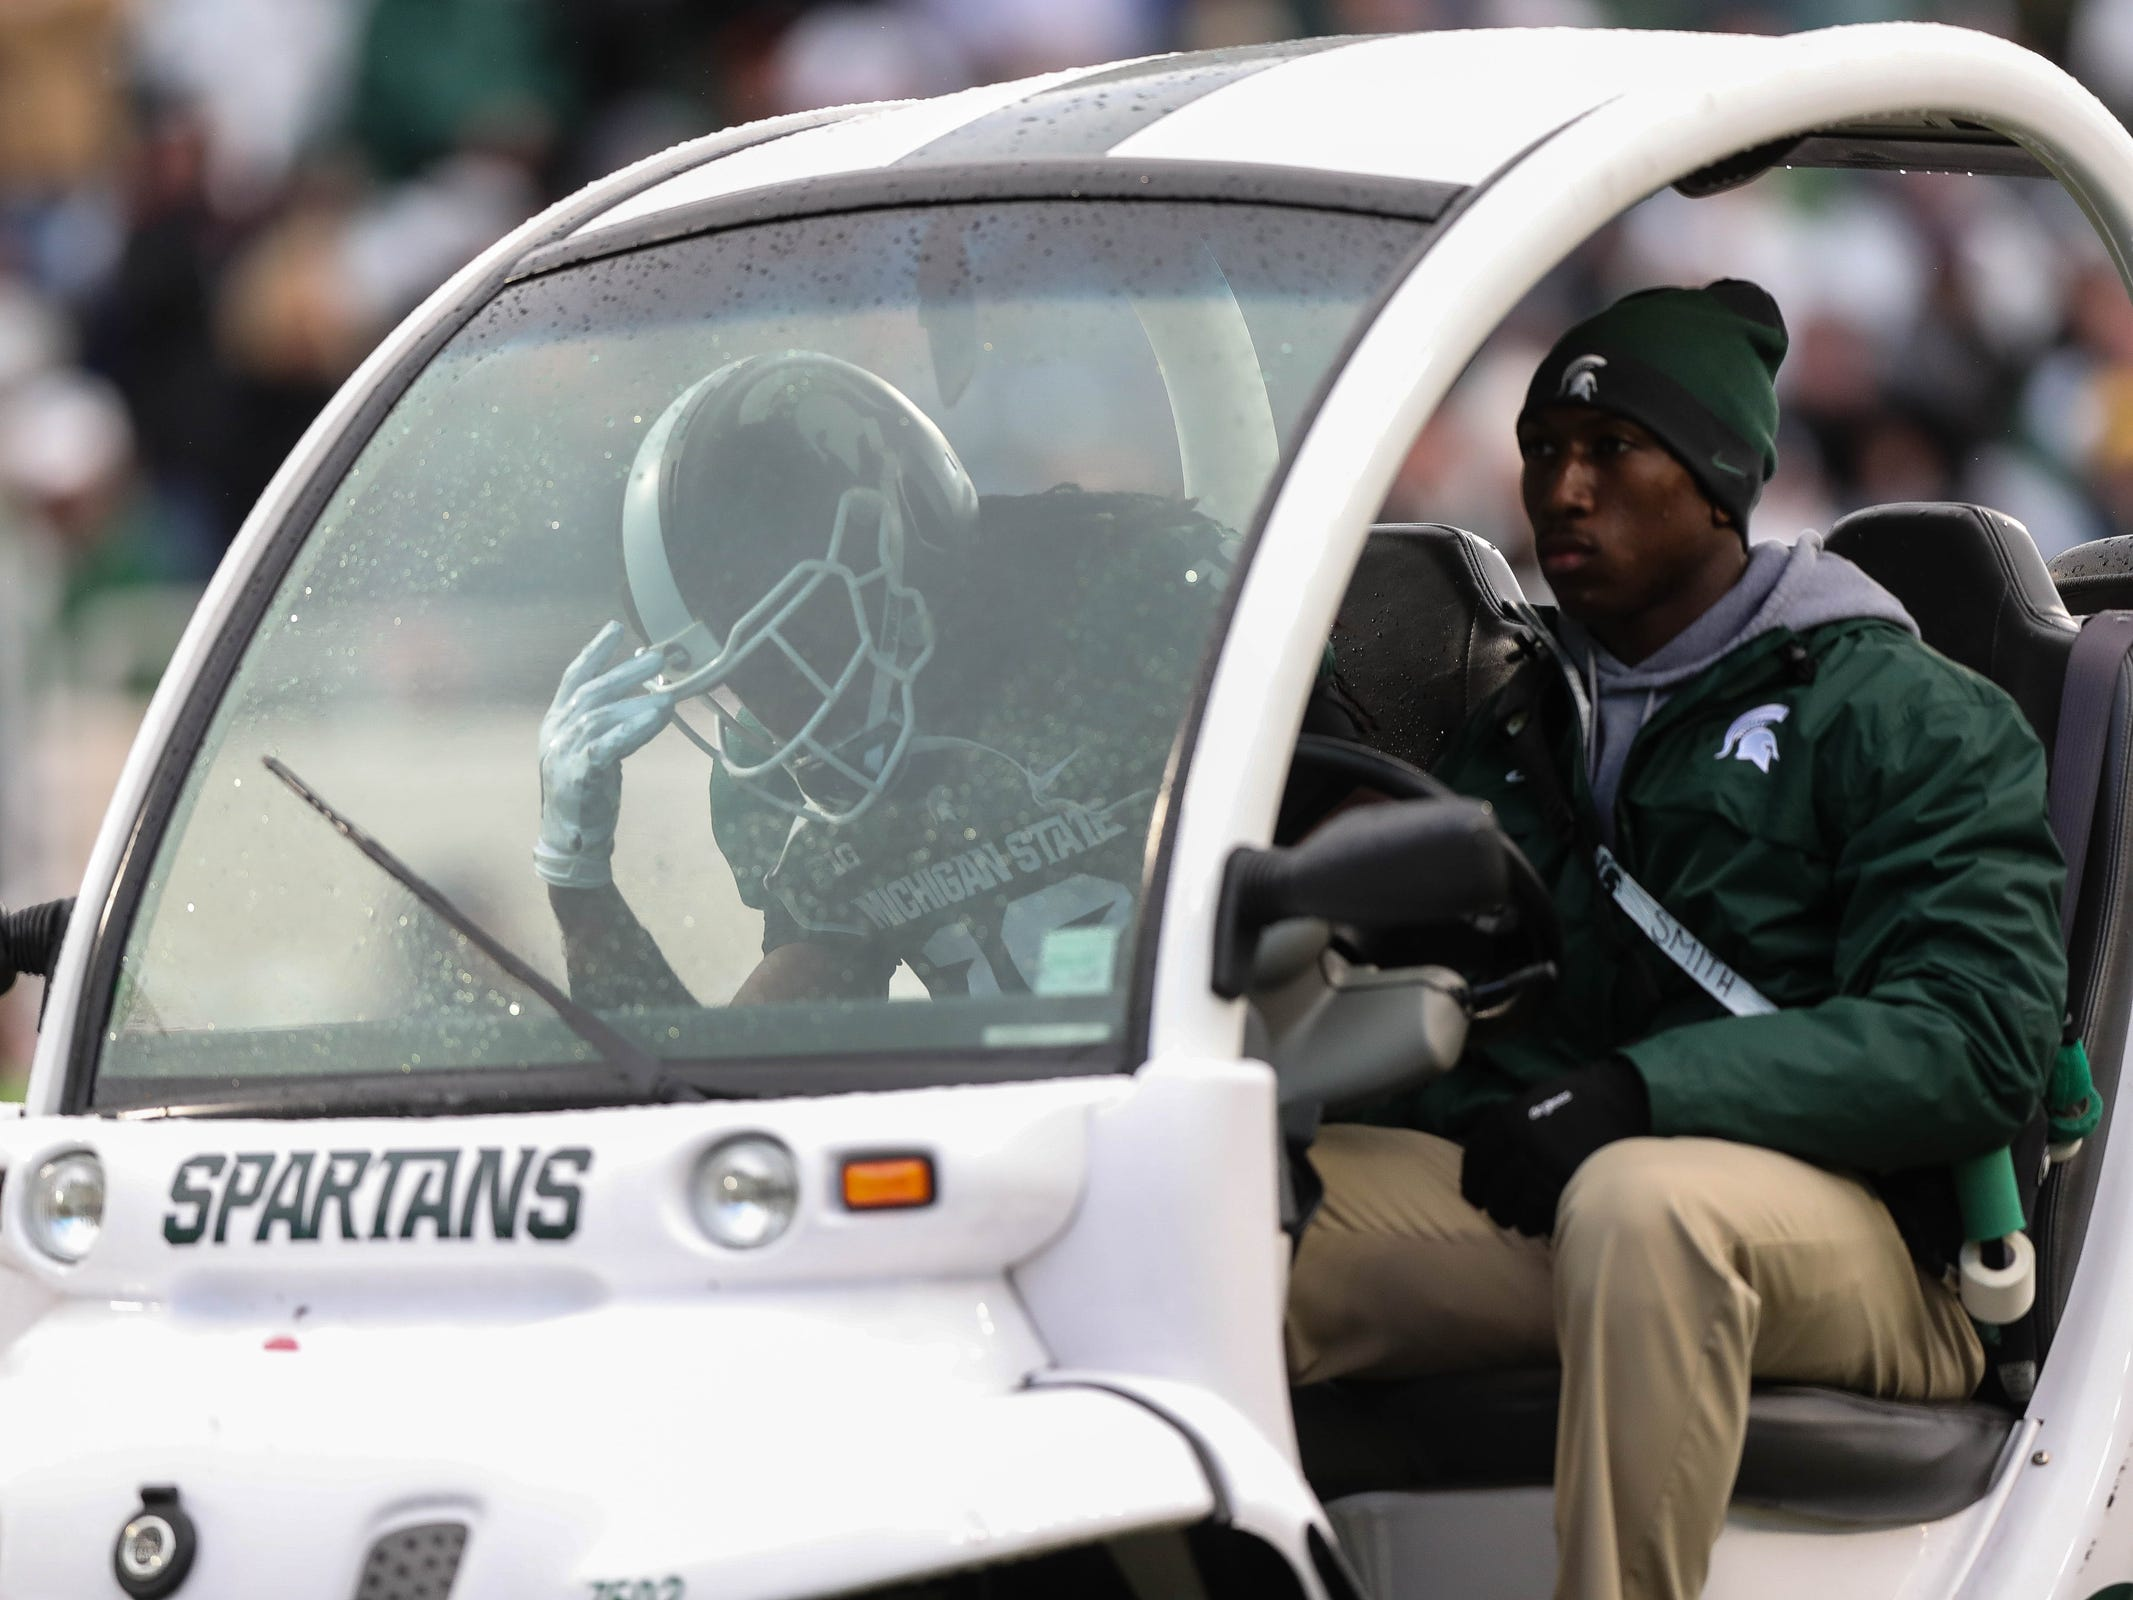 Michigan State's Felton Davis III, left, is carted off the field after injuring his left Achilles' tendon against Michigan, Saturday, Oct. 20, 2018 at Spartan Stadium in East Lansing.